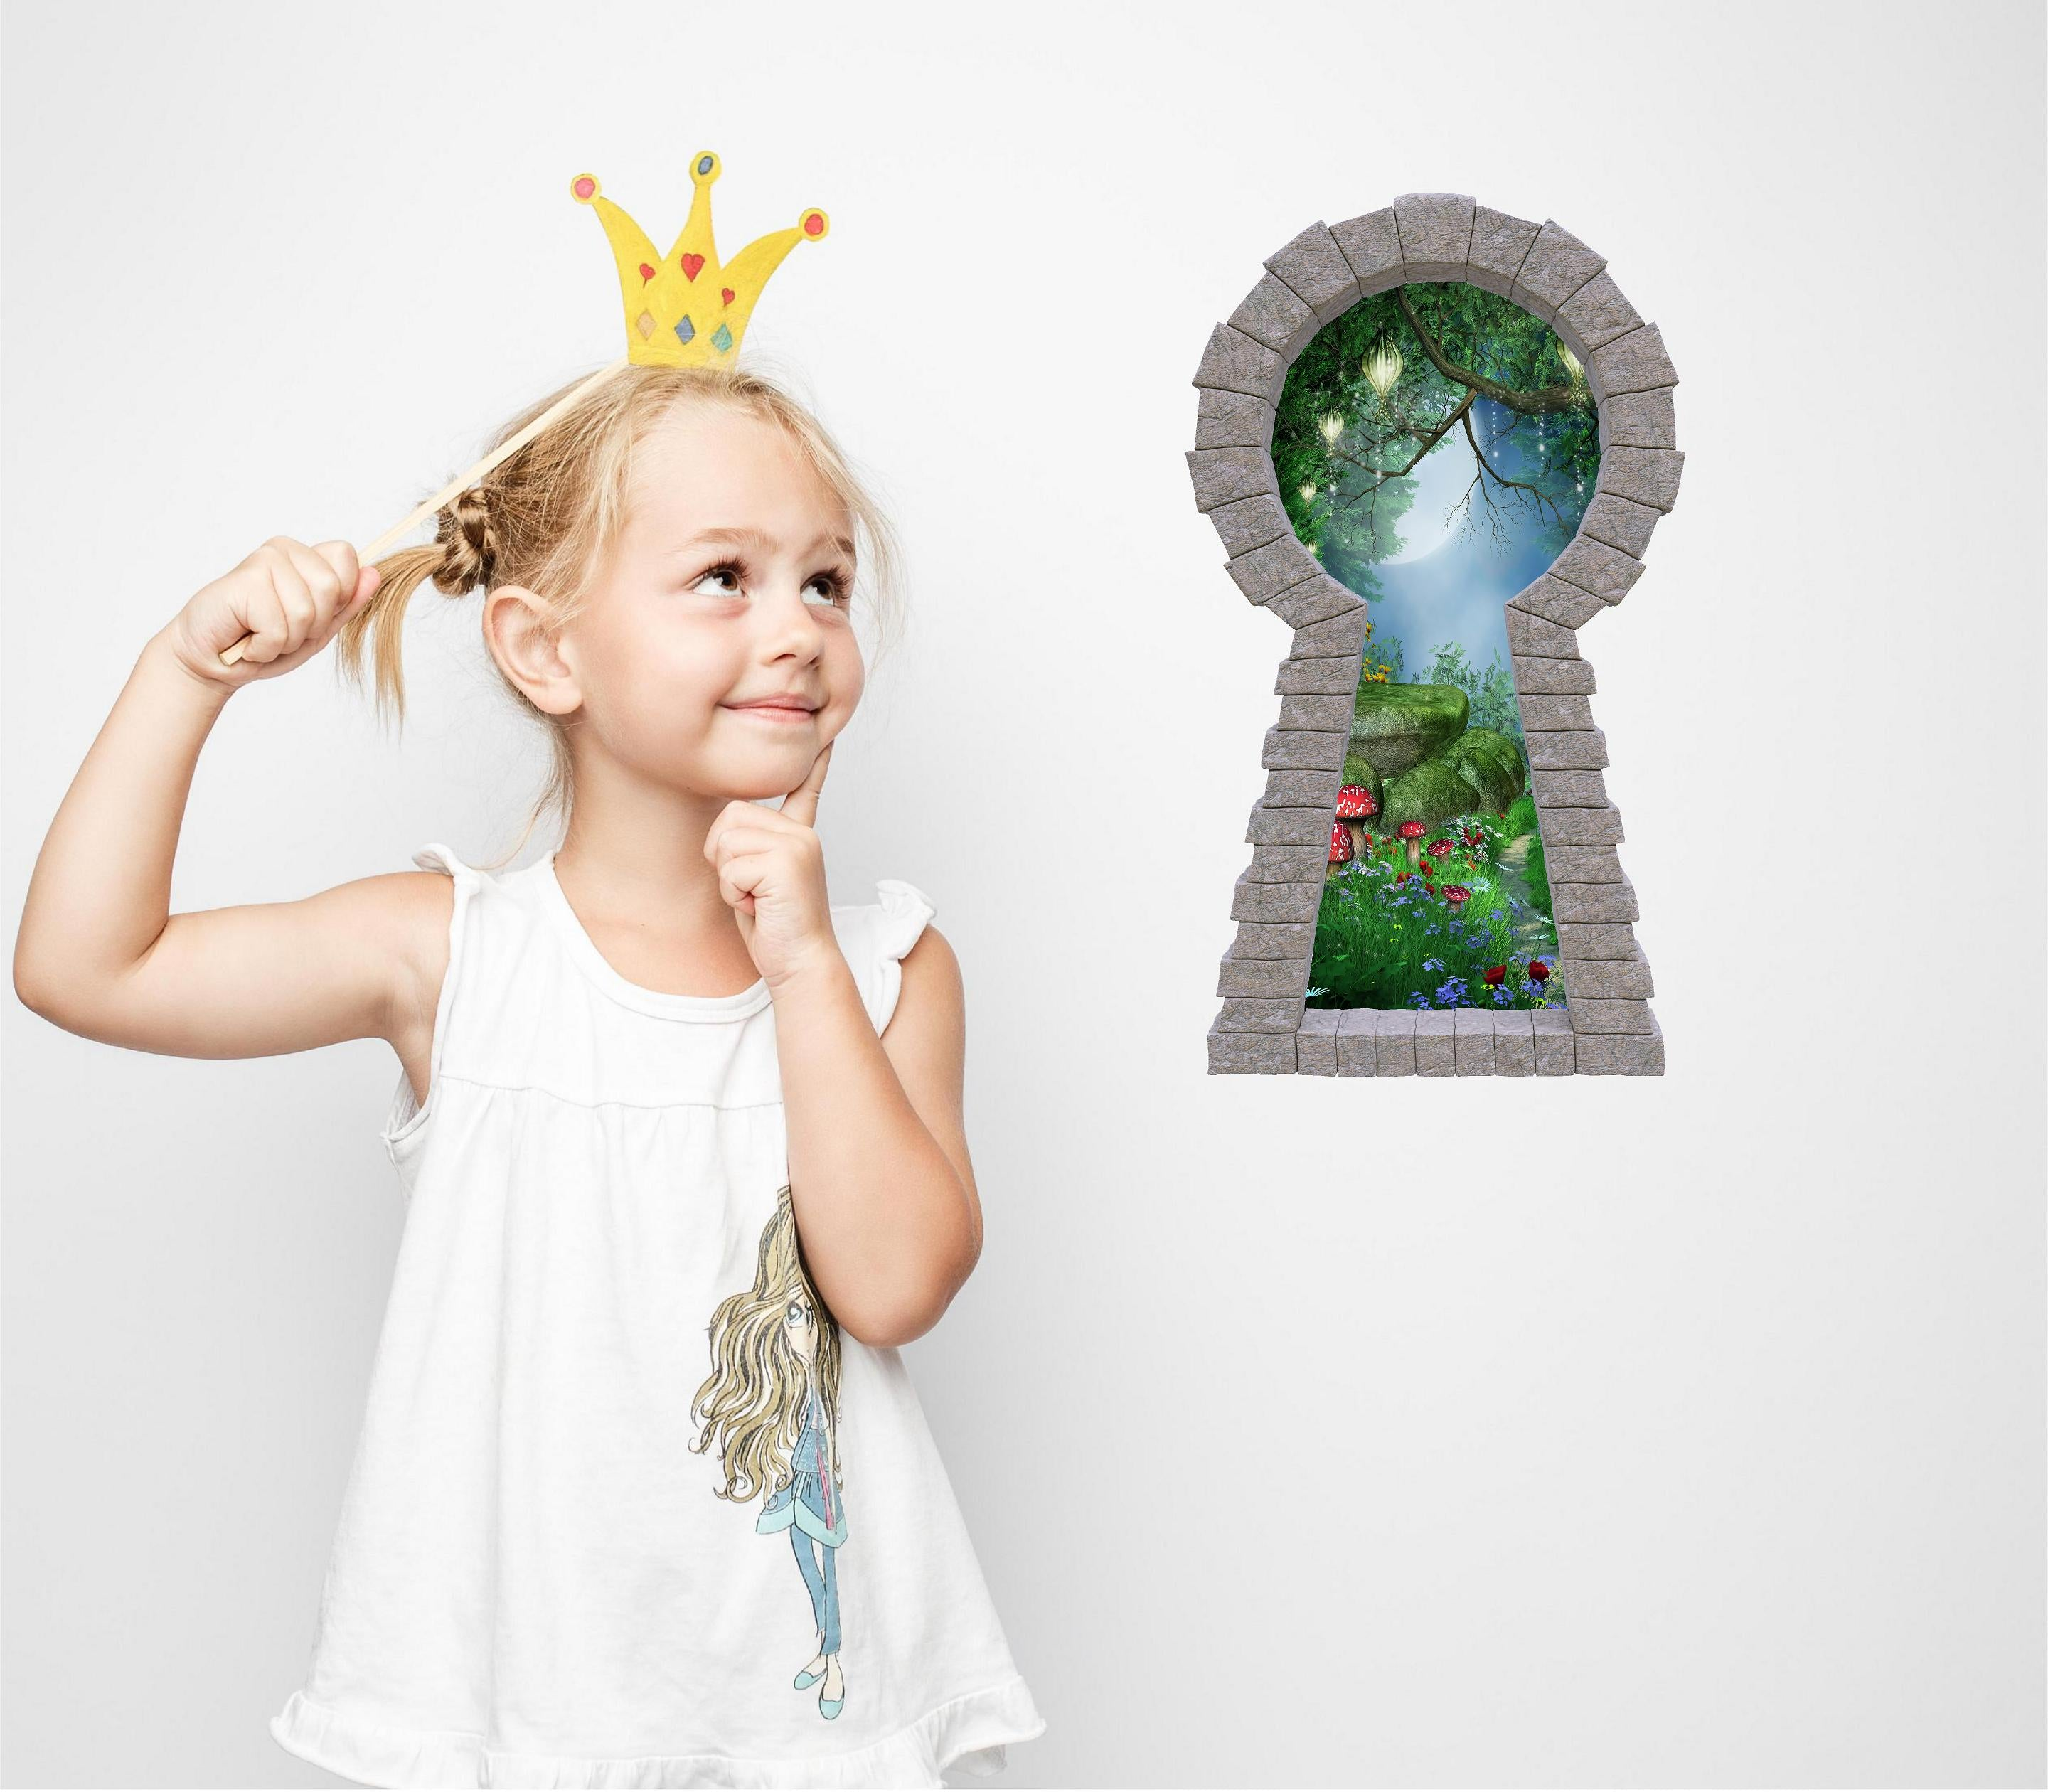 3D Stone Keyhole Wall Decal Enchanted Lantern Forest #1 Alice In Wonderland Fantasy Brick Window Removable Fabric Vinyl Wall Sticker | DecalBaby